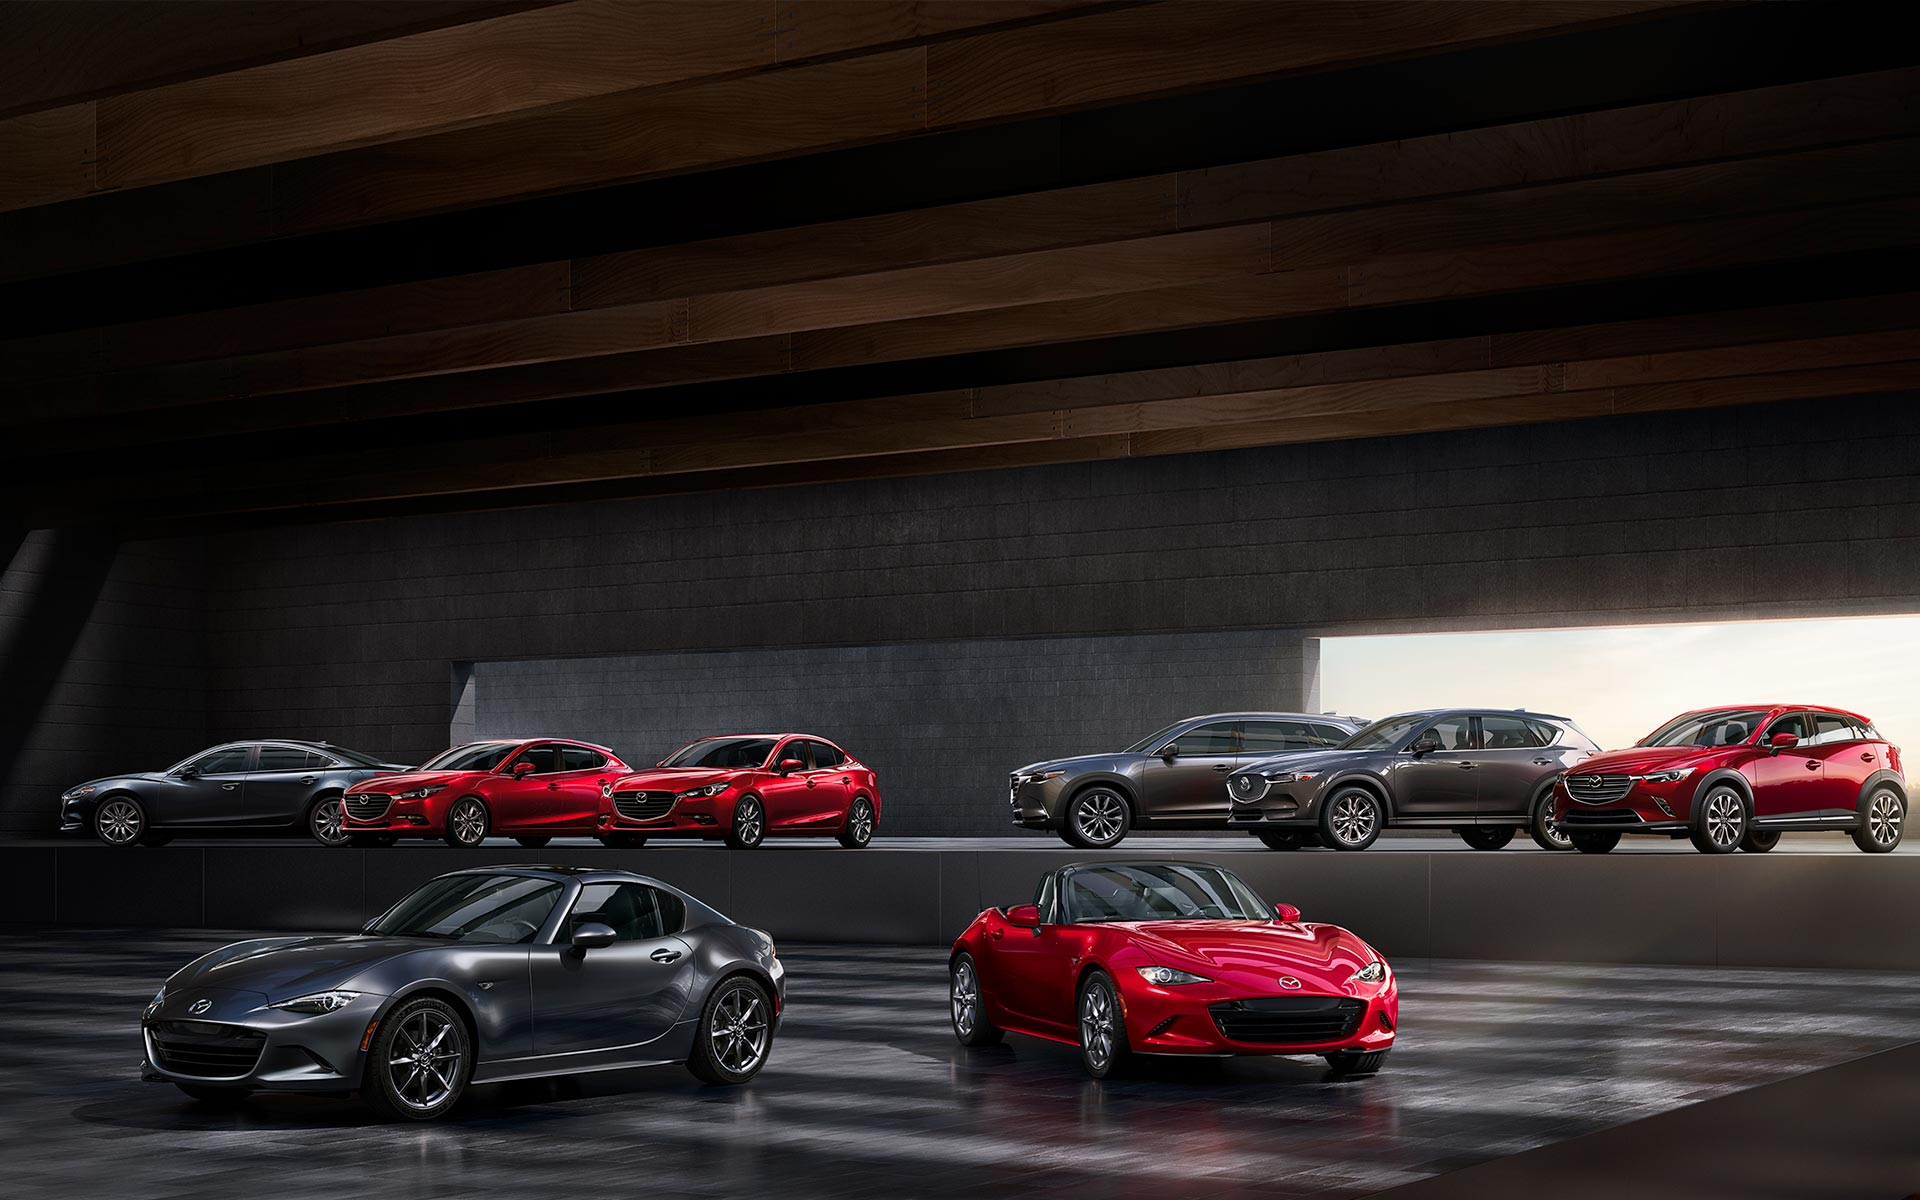 Mazda gamme Groupe chevalley neuves et occasions